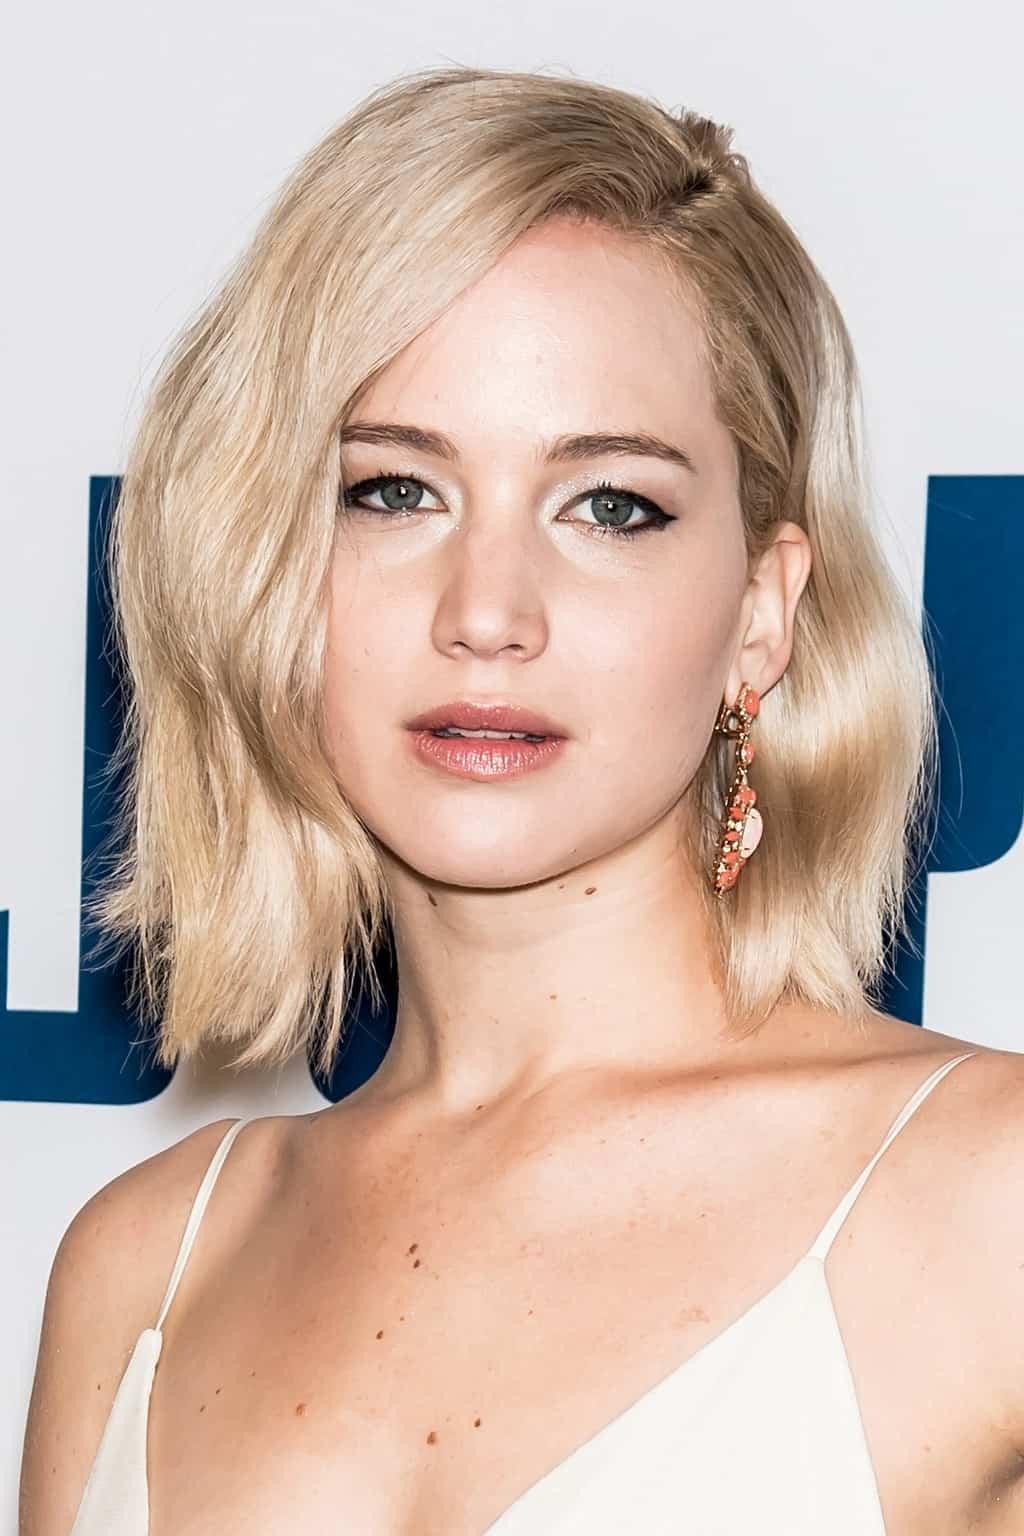 25 Hottest Female Celebrities With Short Hair 2020 Trends